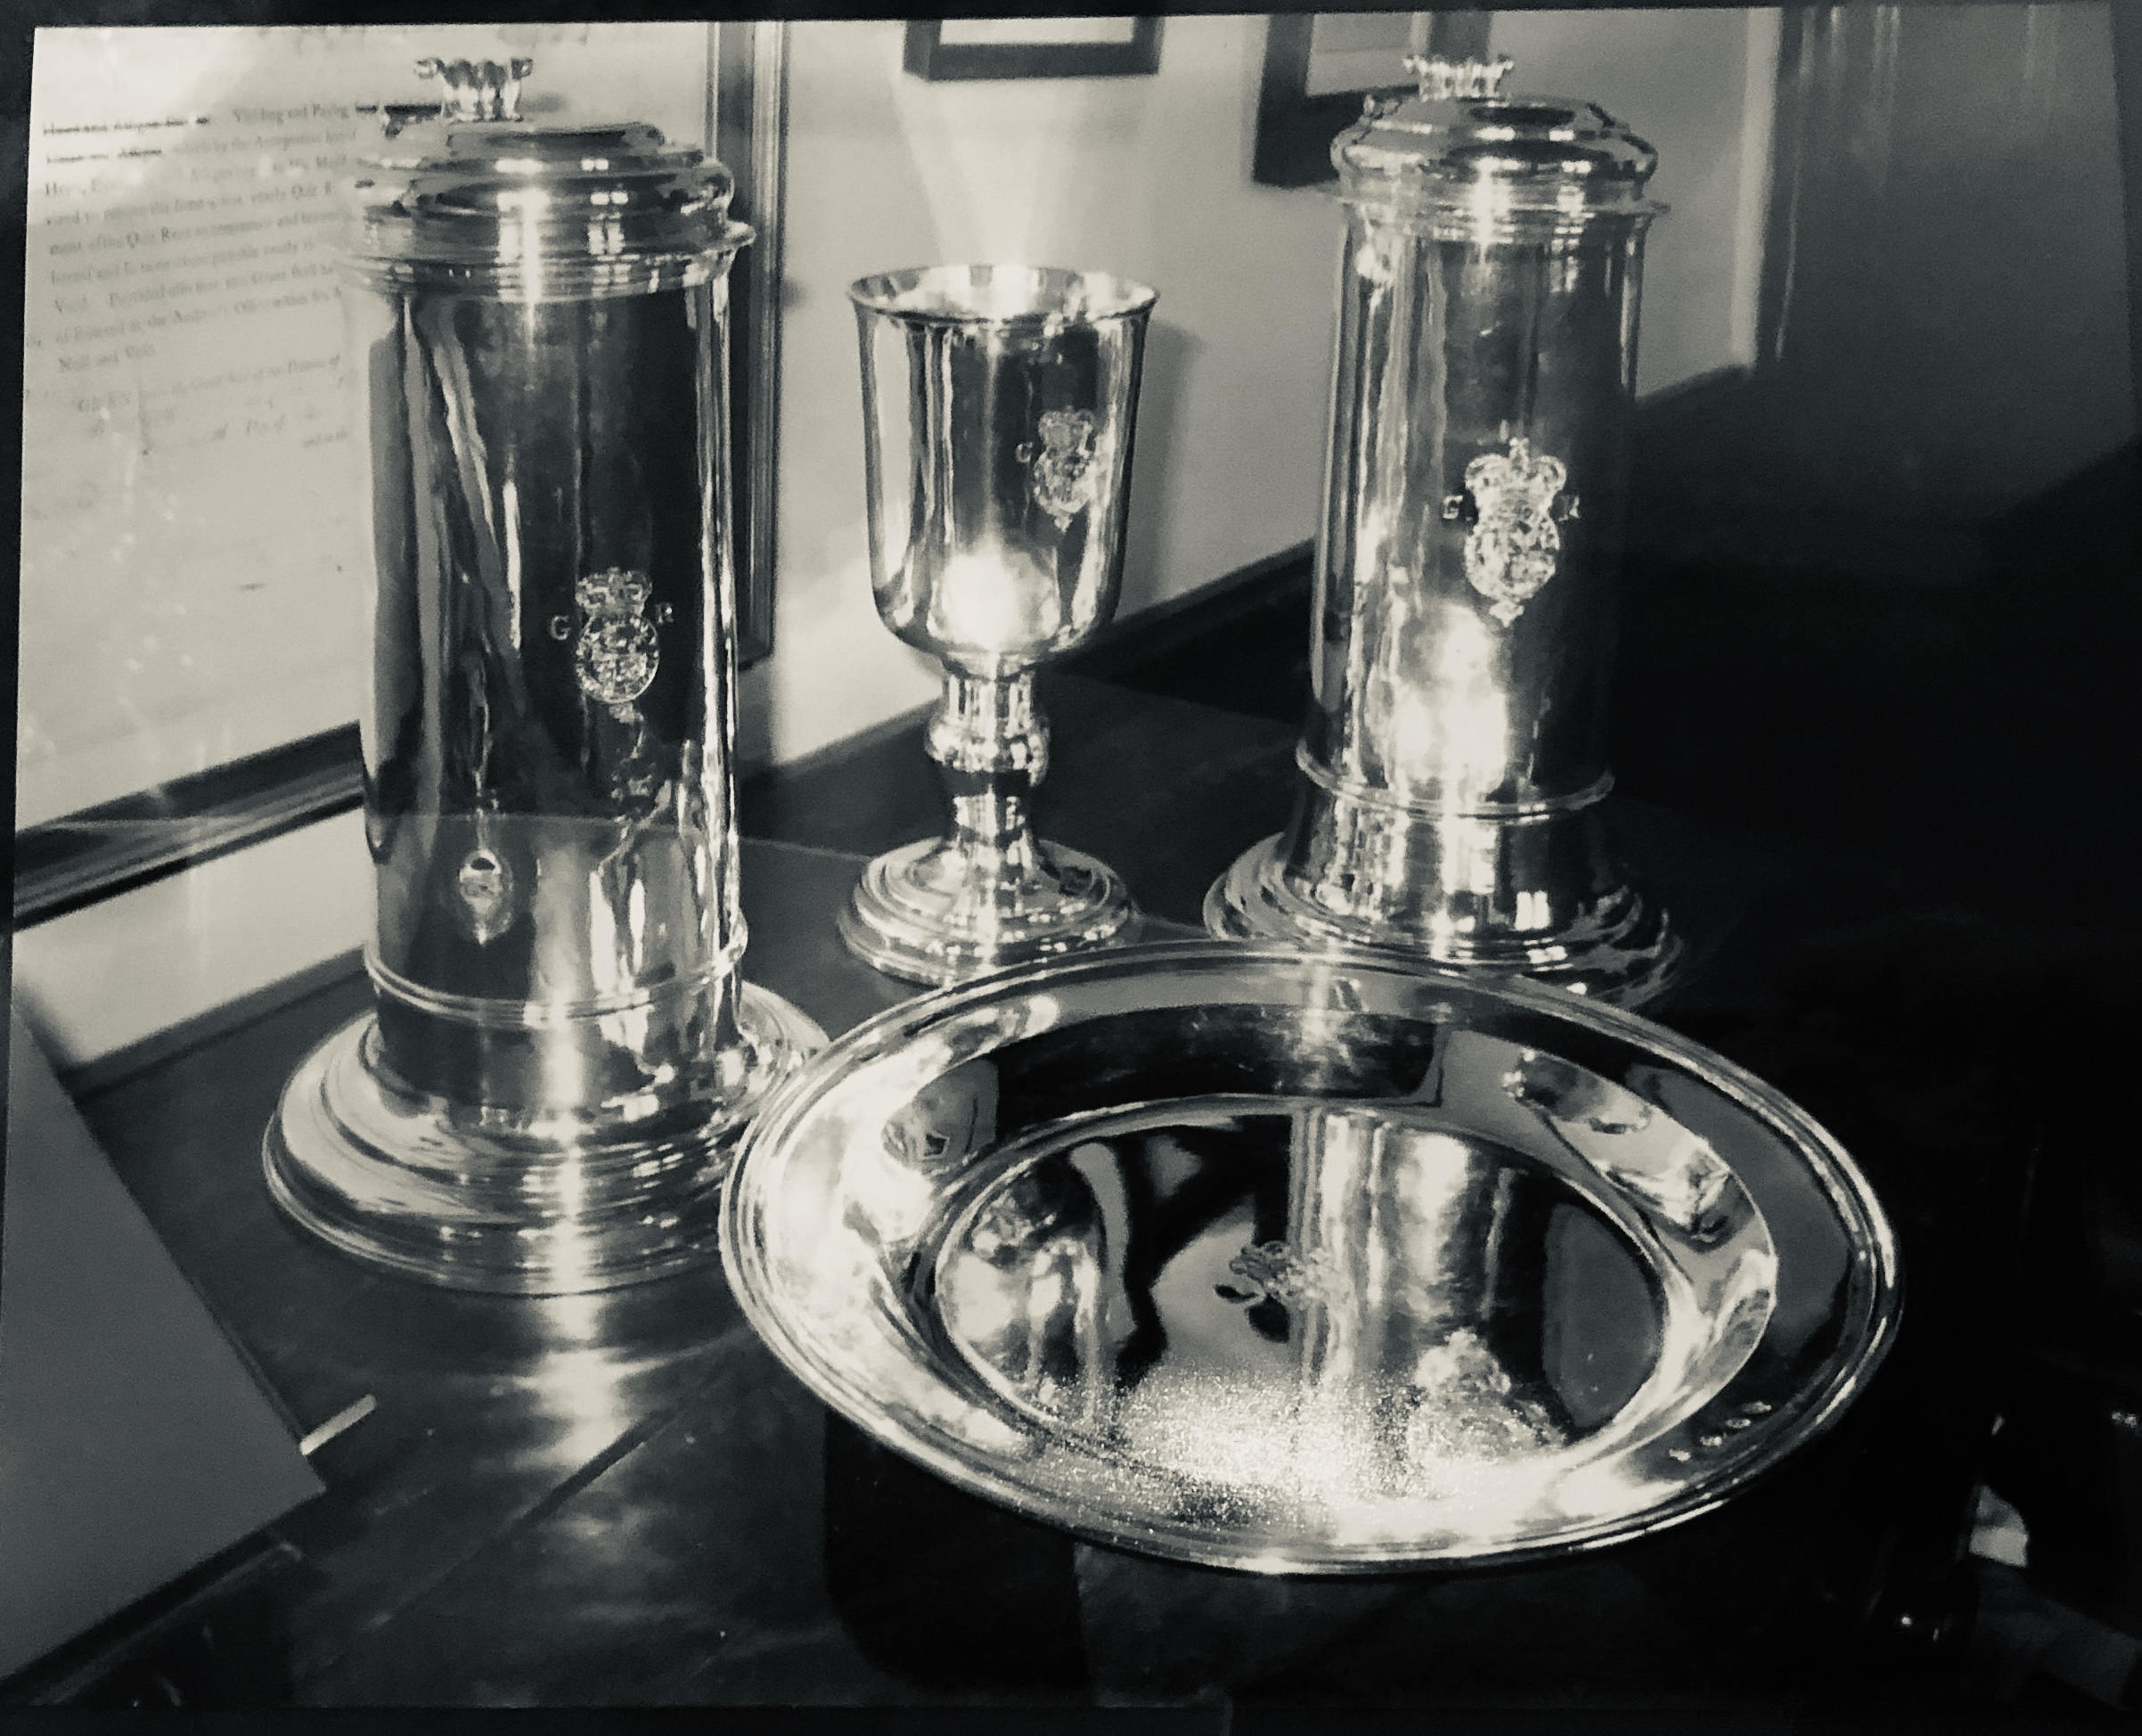 Another Queen Anne silver communion service, St. Paul's Church, Halifax, Nova Scotia. Photo by: Francis Garthone. Credits to: Hantsheroes